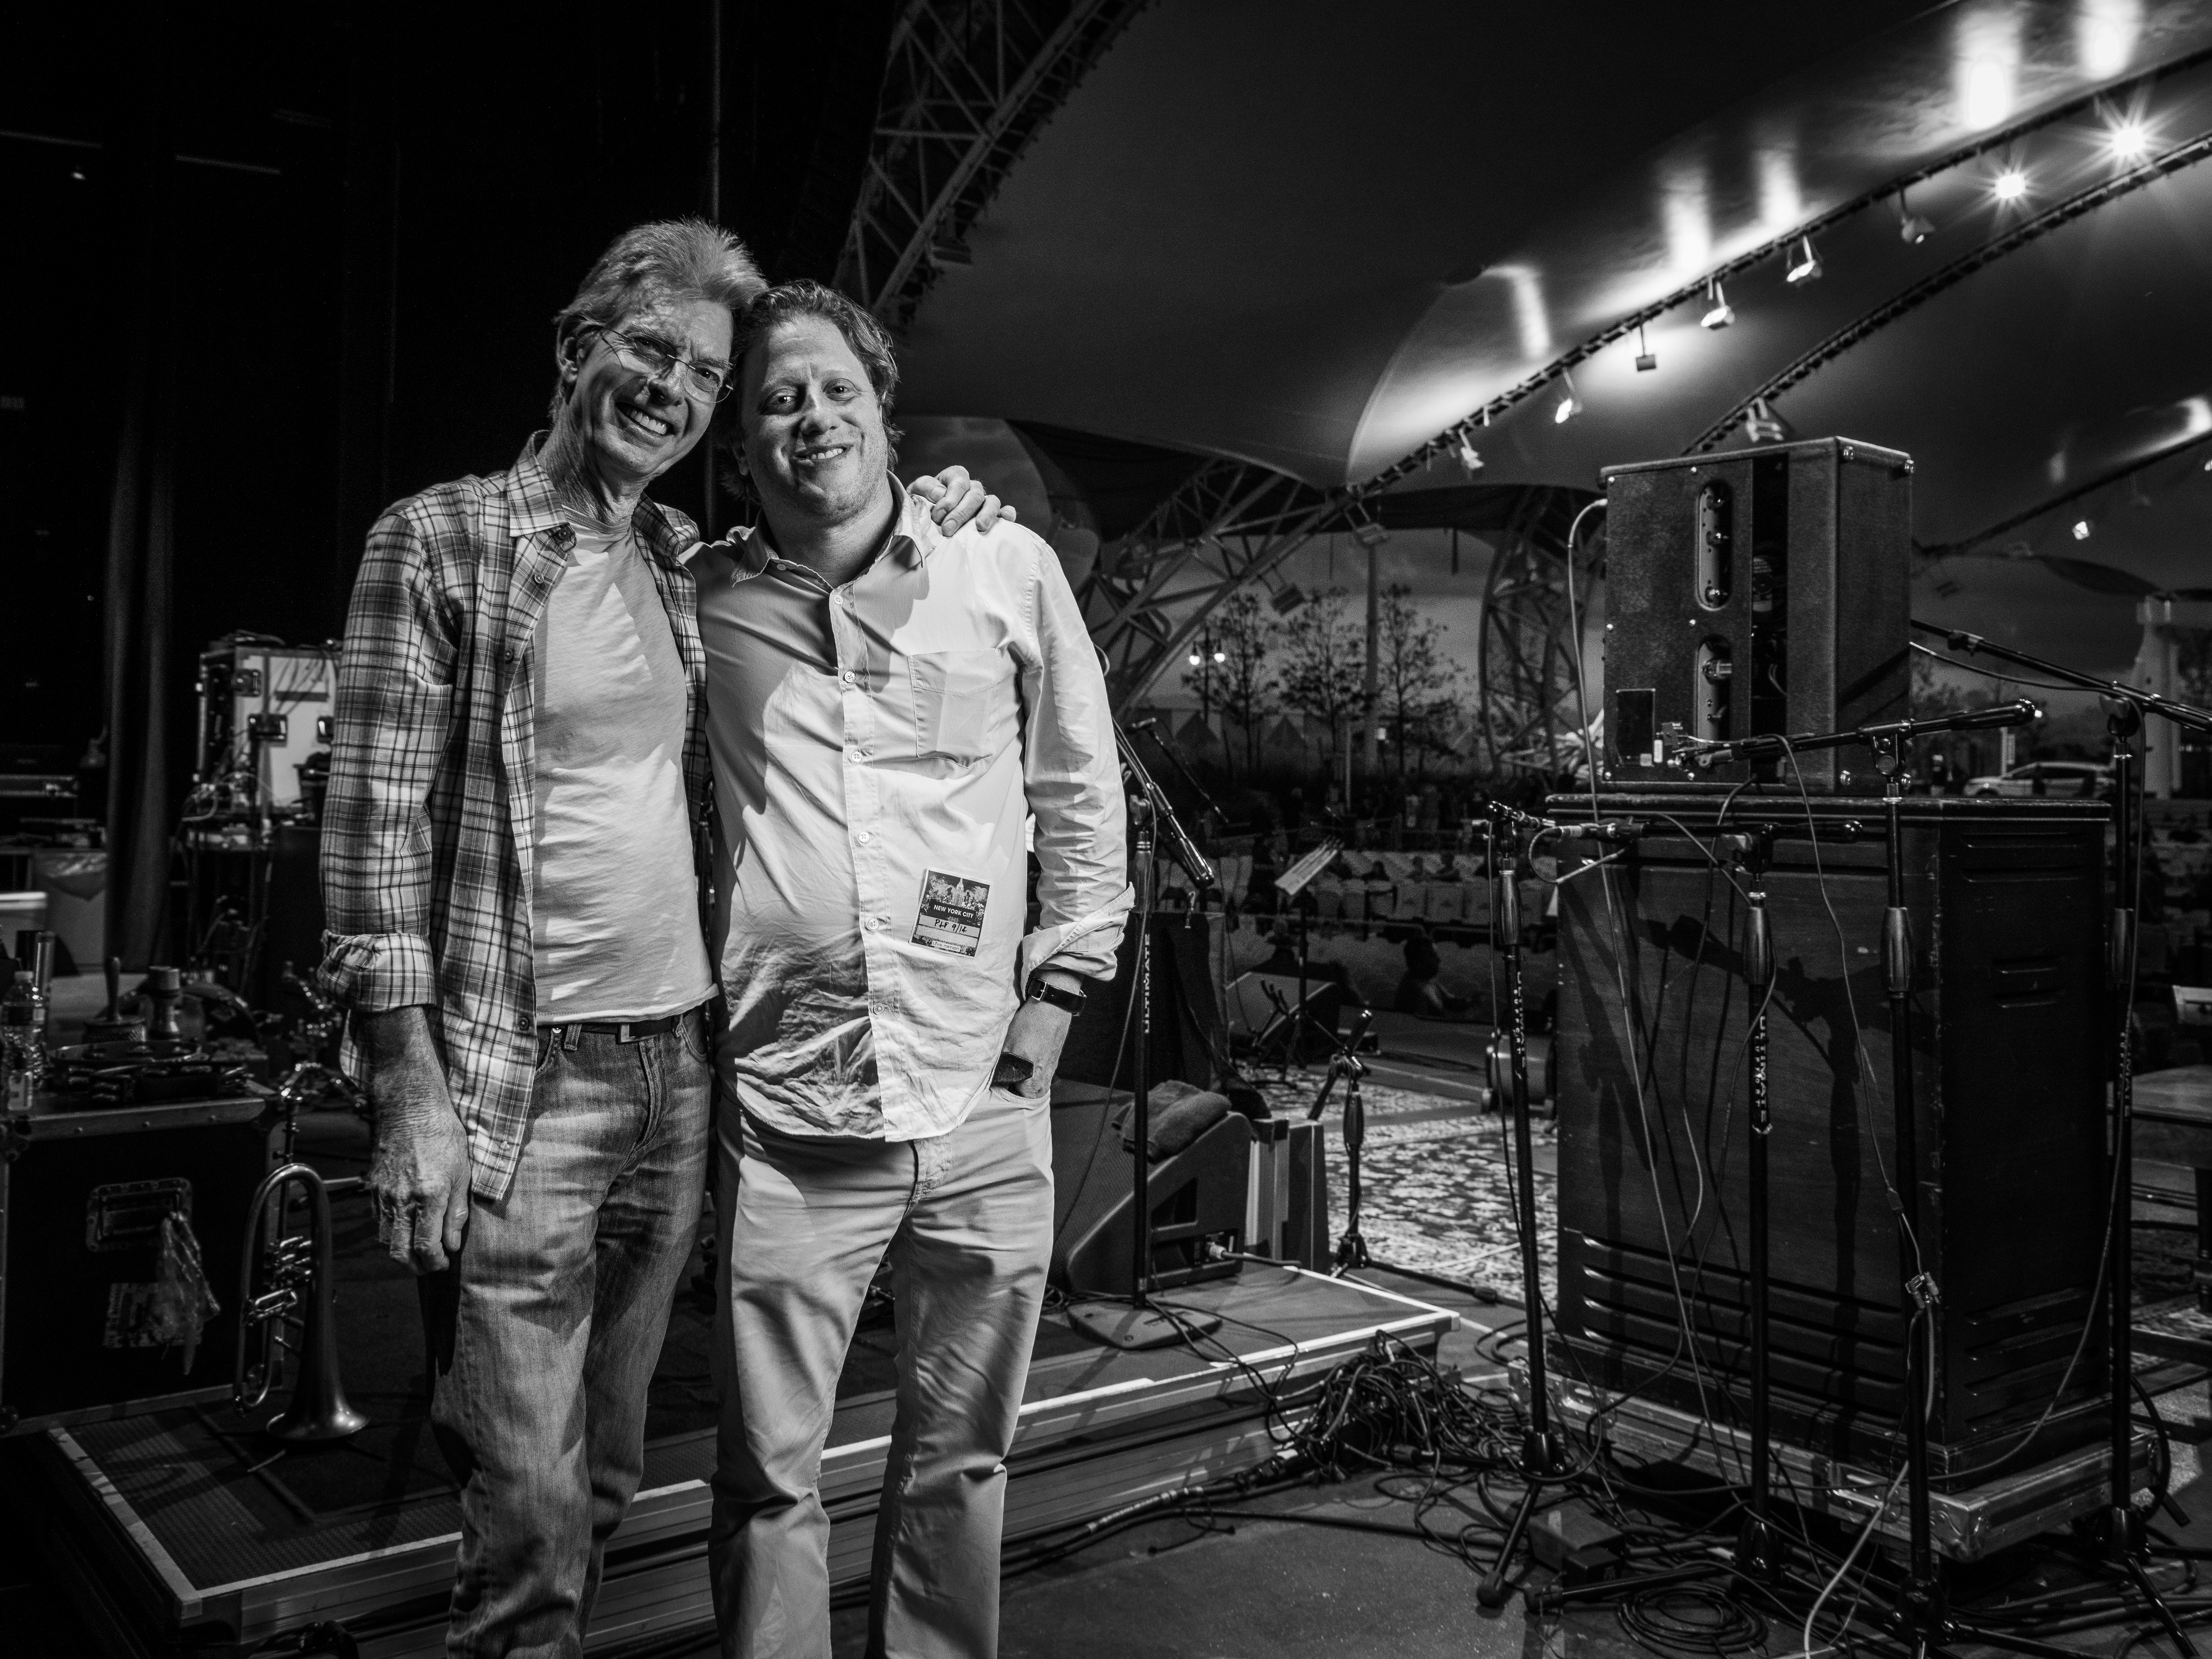 Phil Lesh and Peter Shapiro onstage before Lesh's first of two shows at Coney Island.